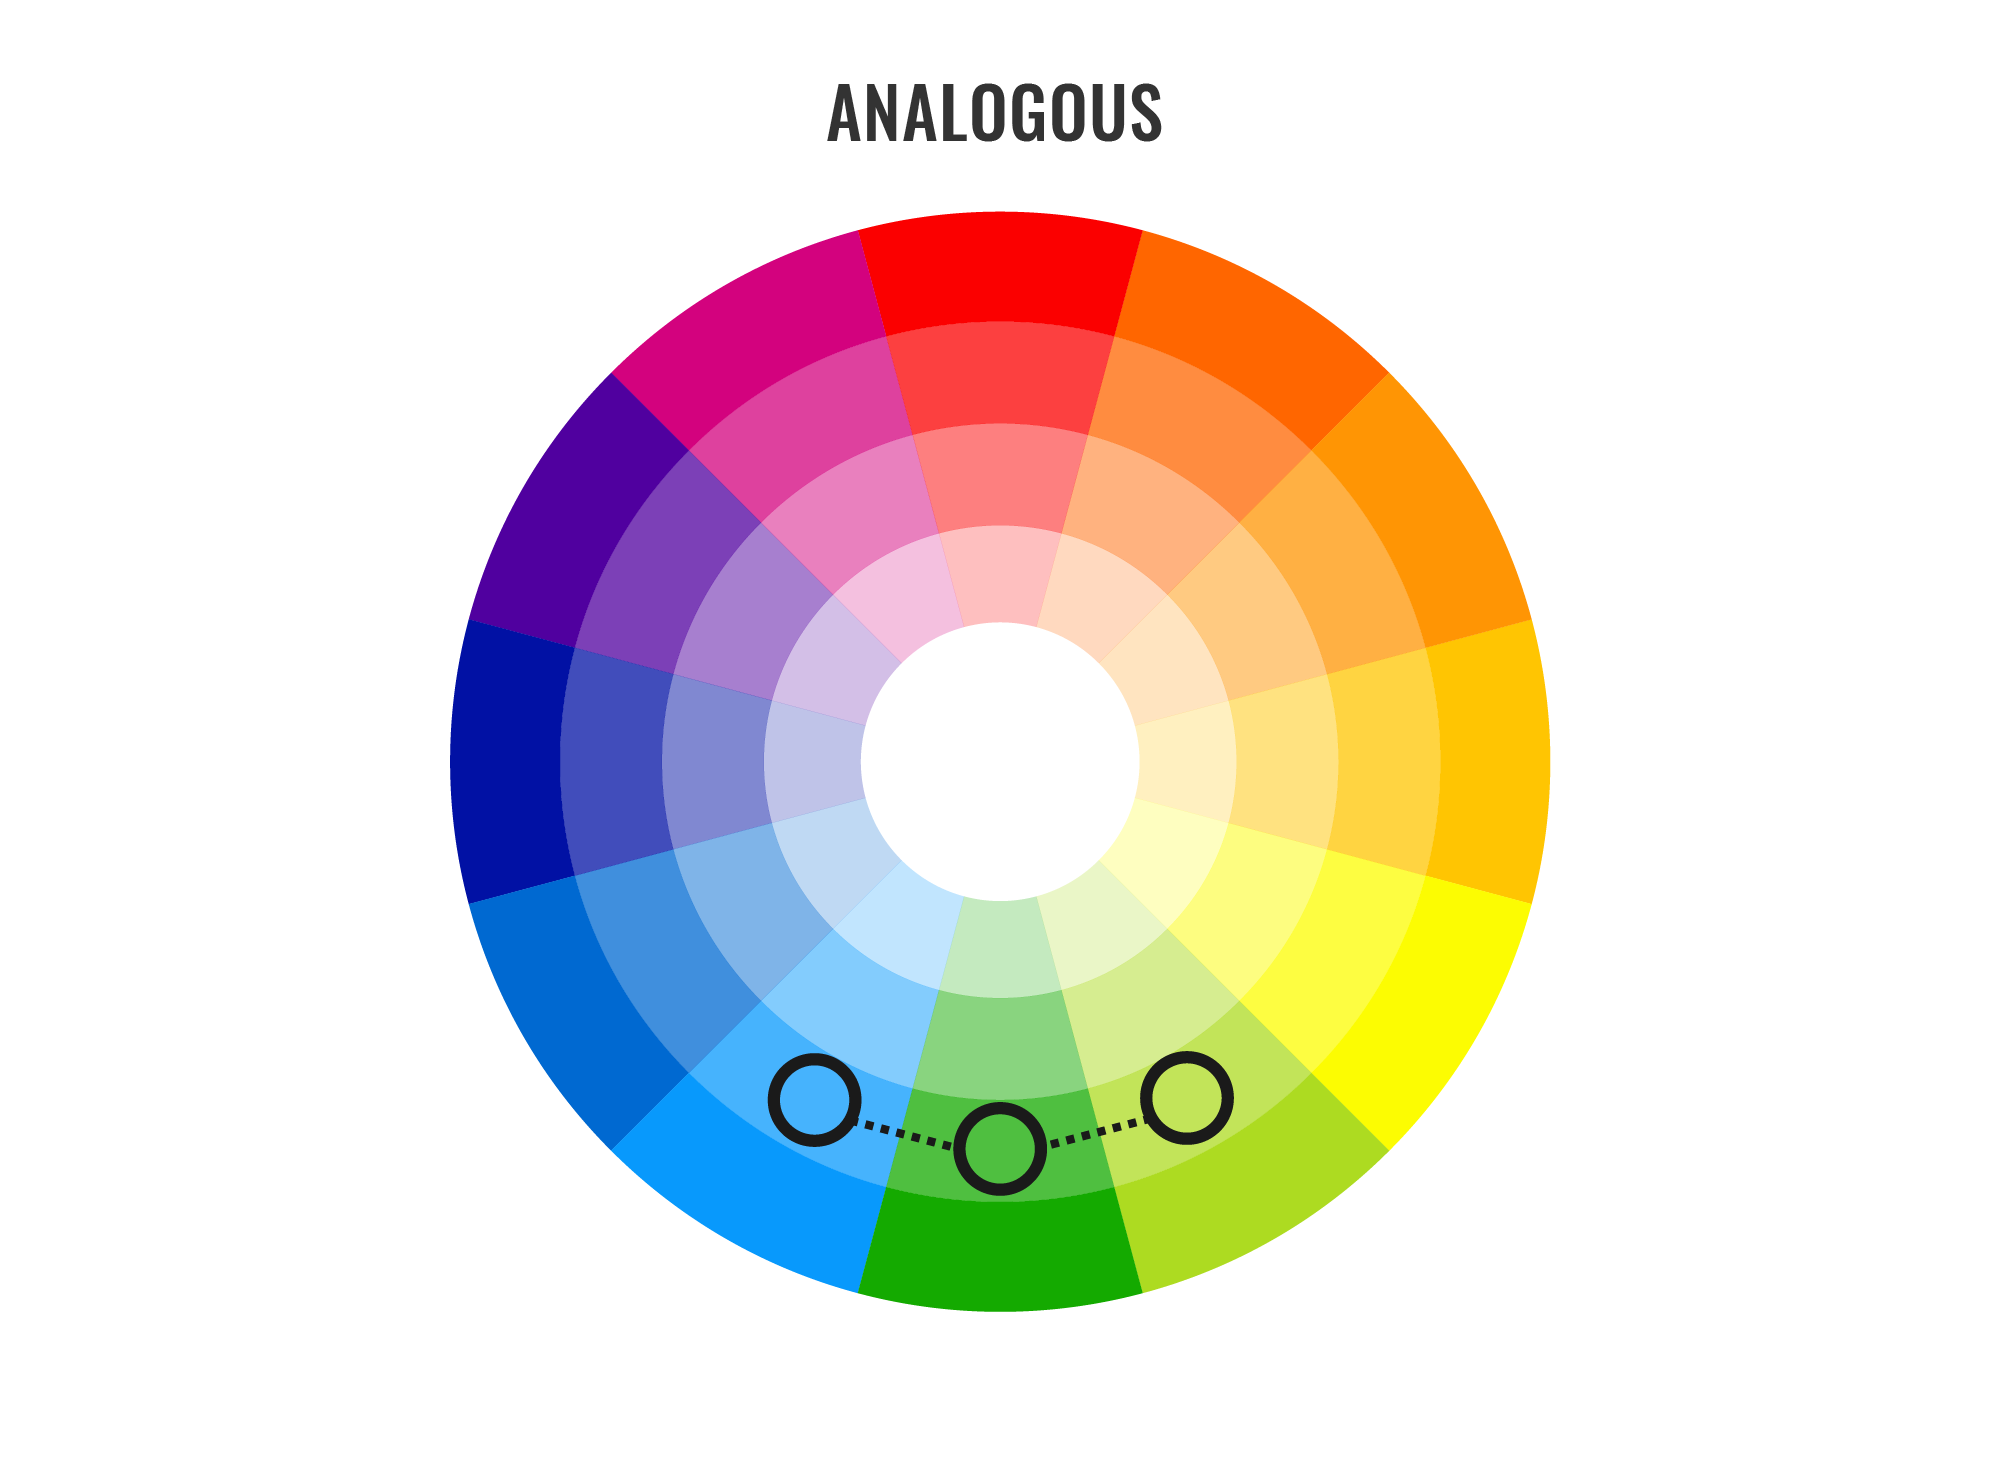 Using color schemes in mobile ui design sitepoint - Analogous color scheme definition ...